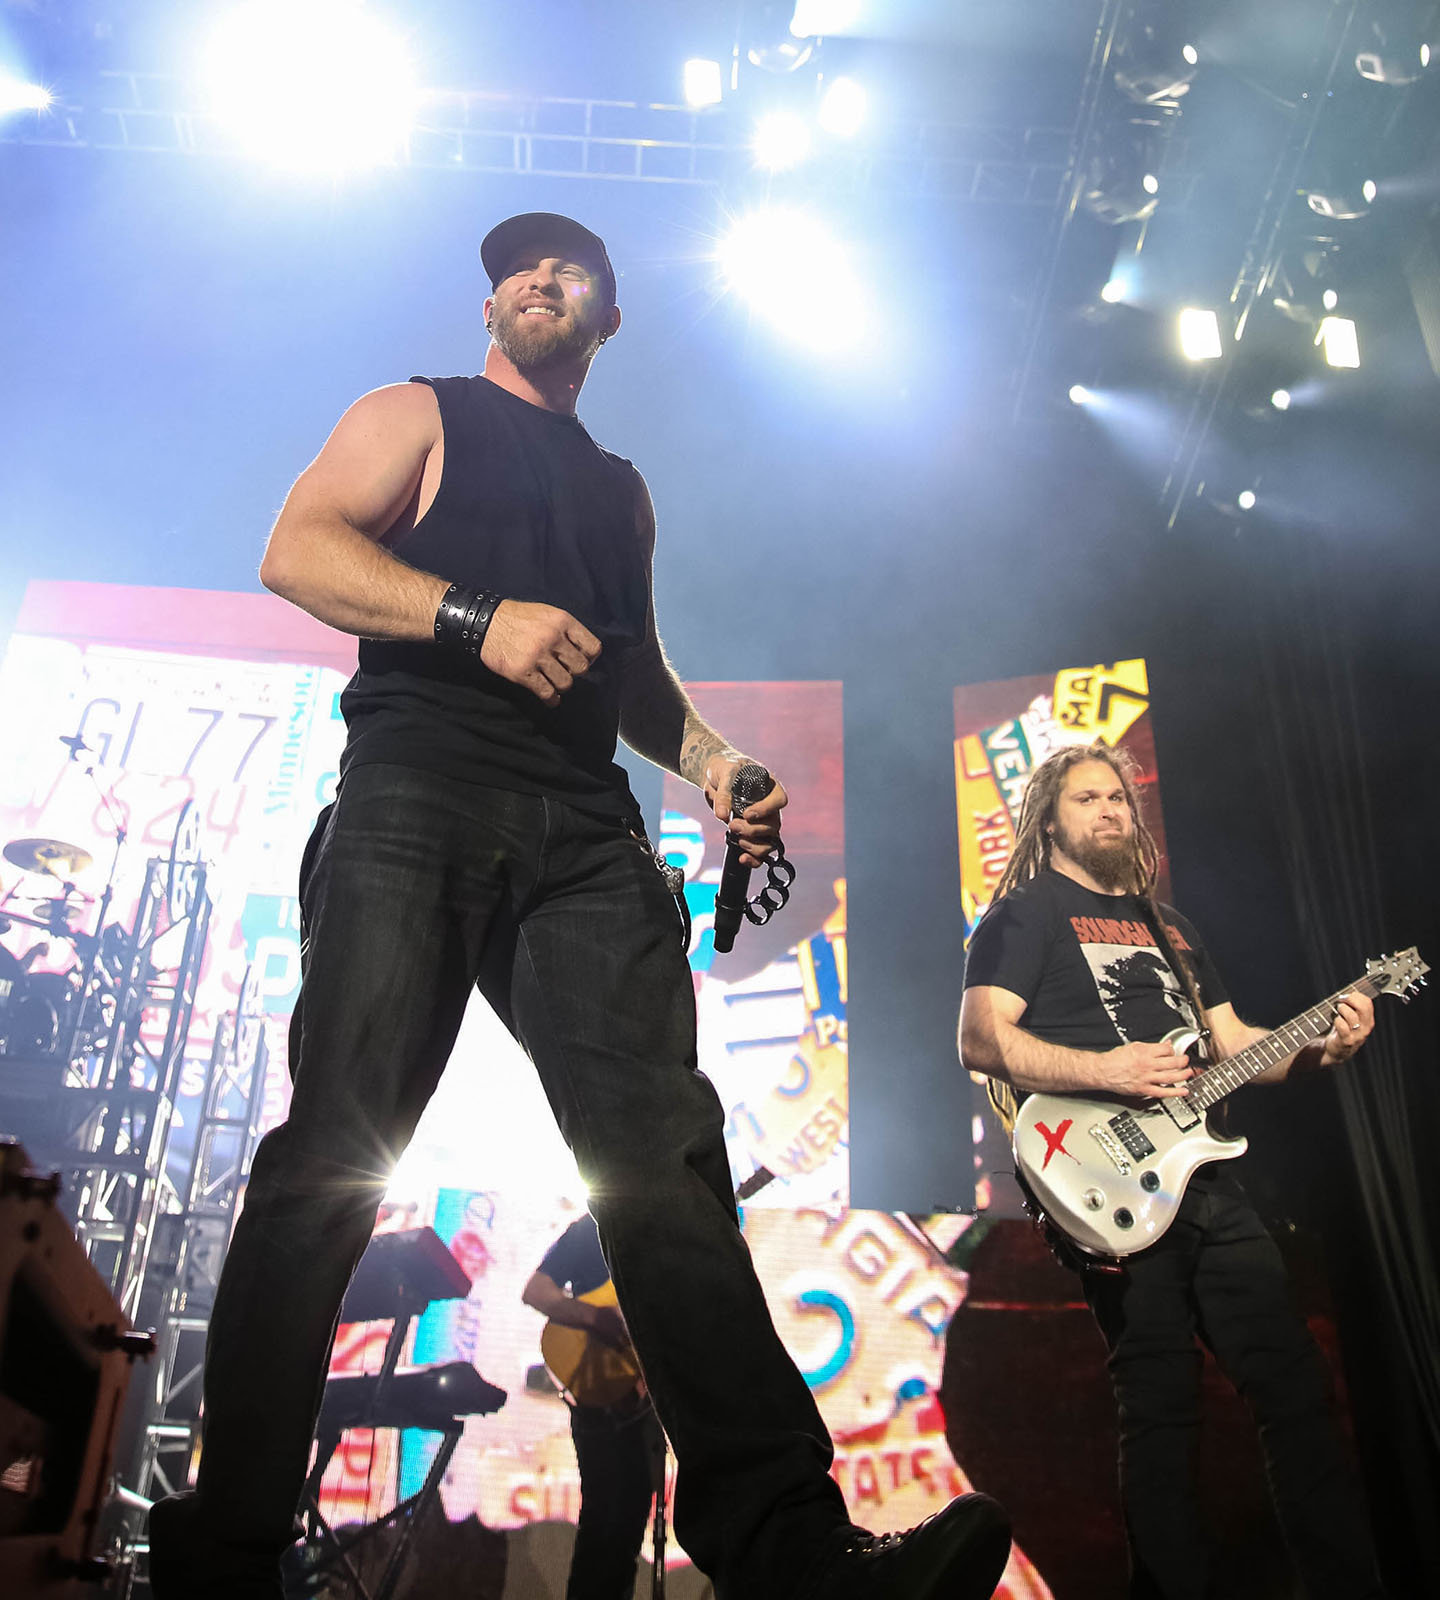 Brantley Gilbert concert photo 2